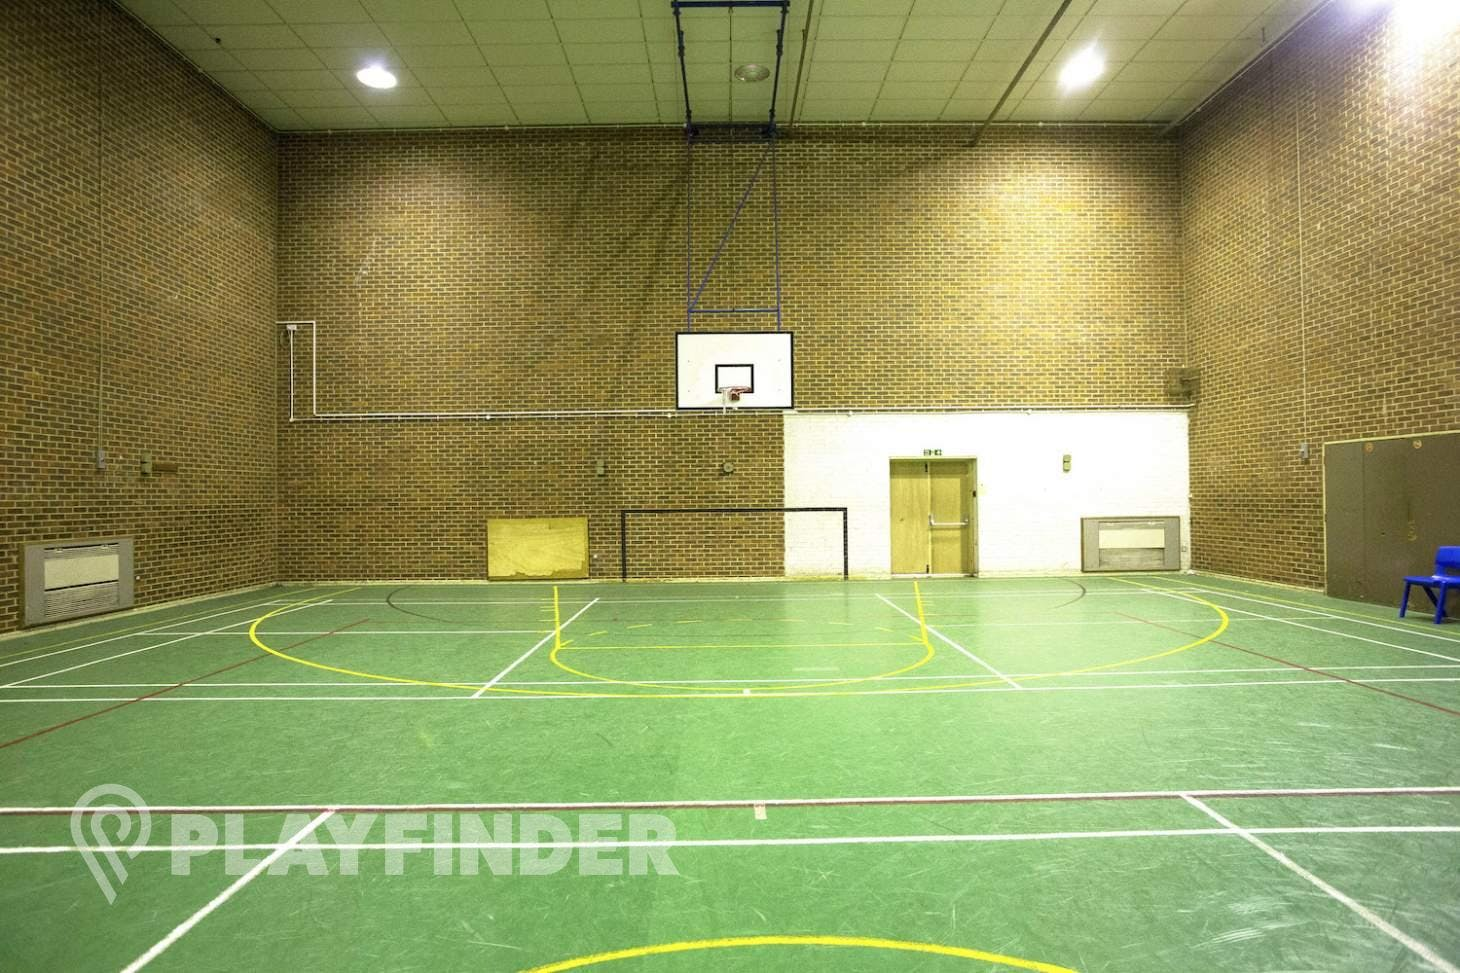 Christ's College Finchley Indoor basketball court